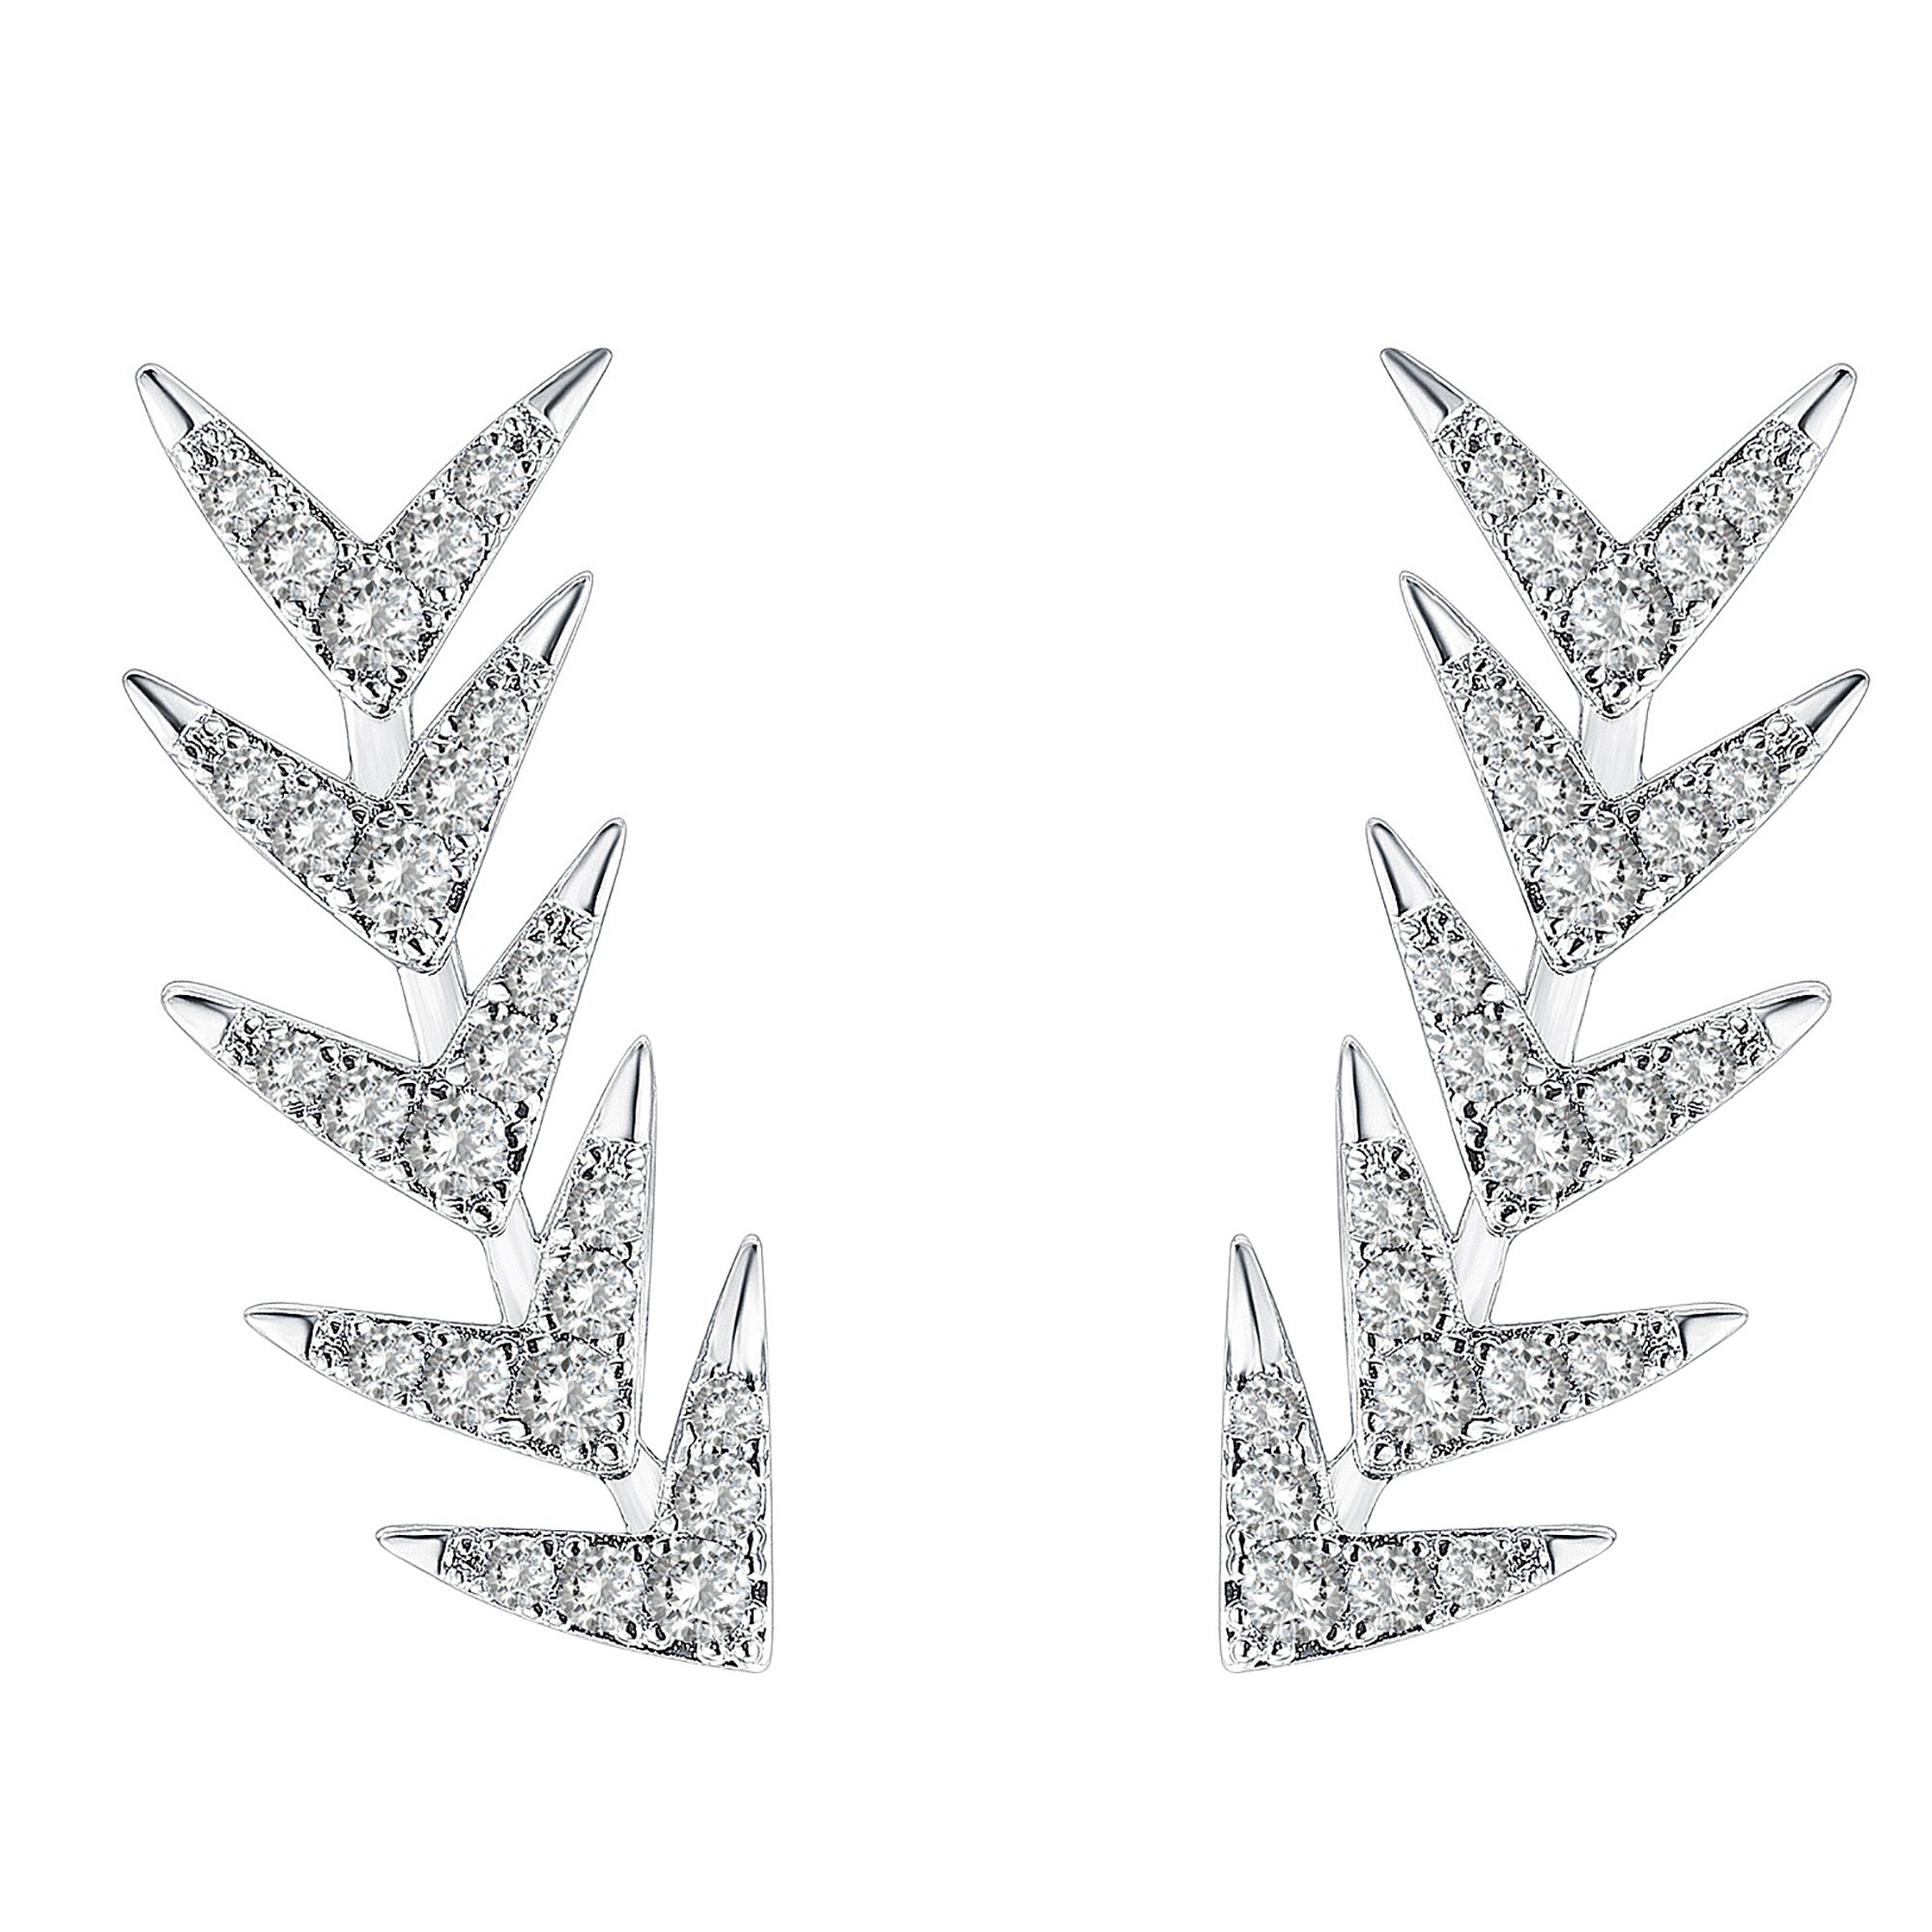 PAVOI Rhodium Plated Sterling Silver Post Climber Arrow Ear Crawler Earrings